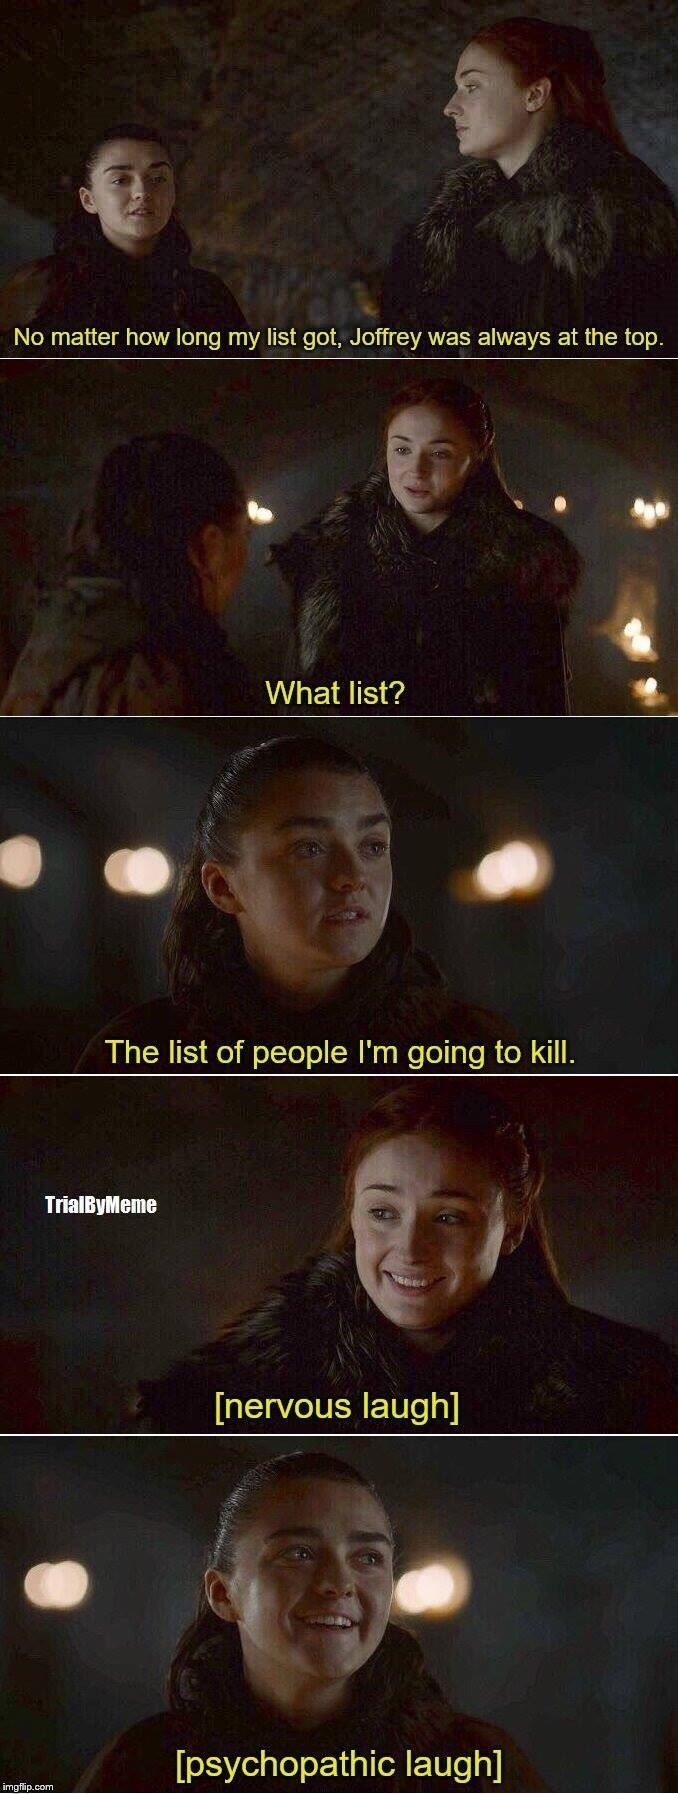 Sky - No matter how long my list got, Joffrey was always at the top. What list? The list of people I'm going to kill. TrialByMeme [nervous laugh] [psychopathic laugh] imgflip.com